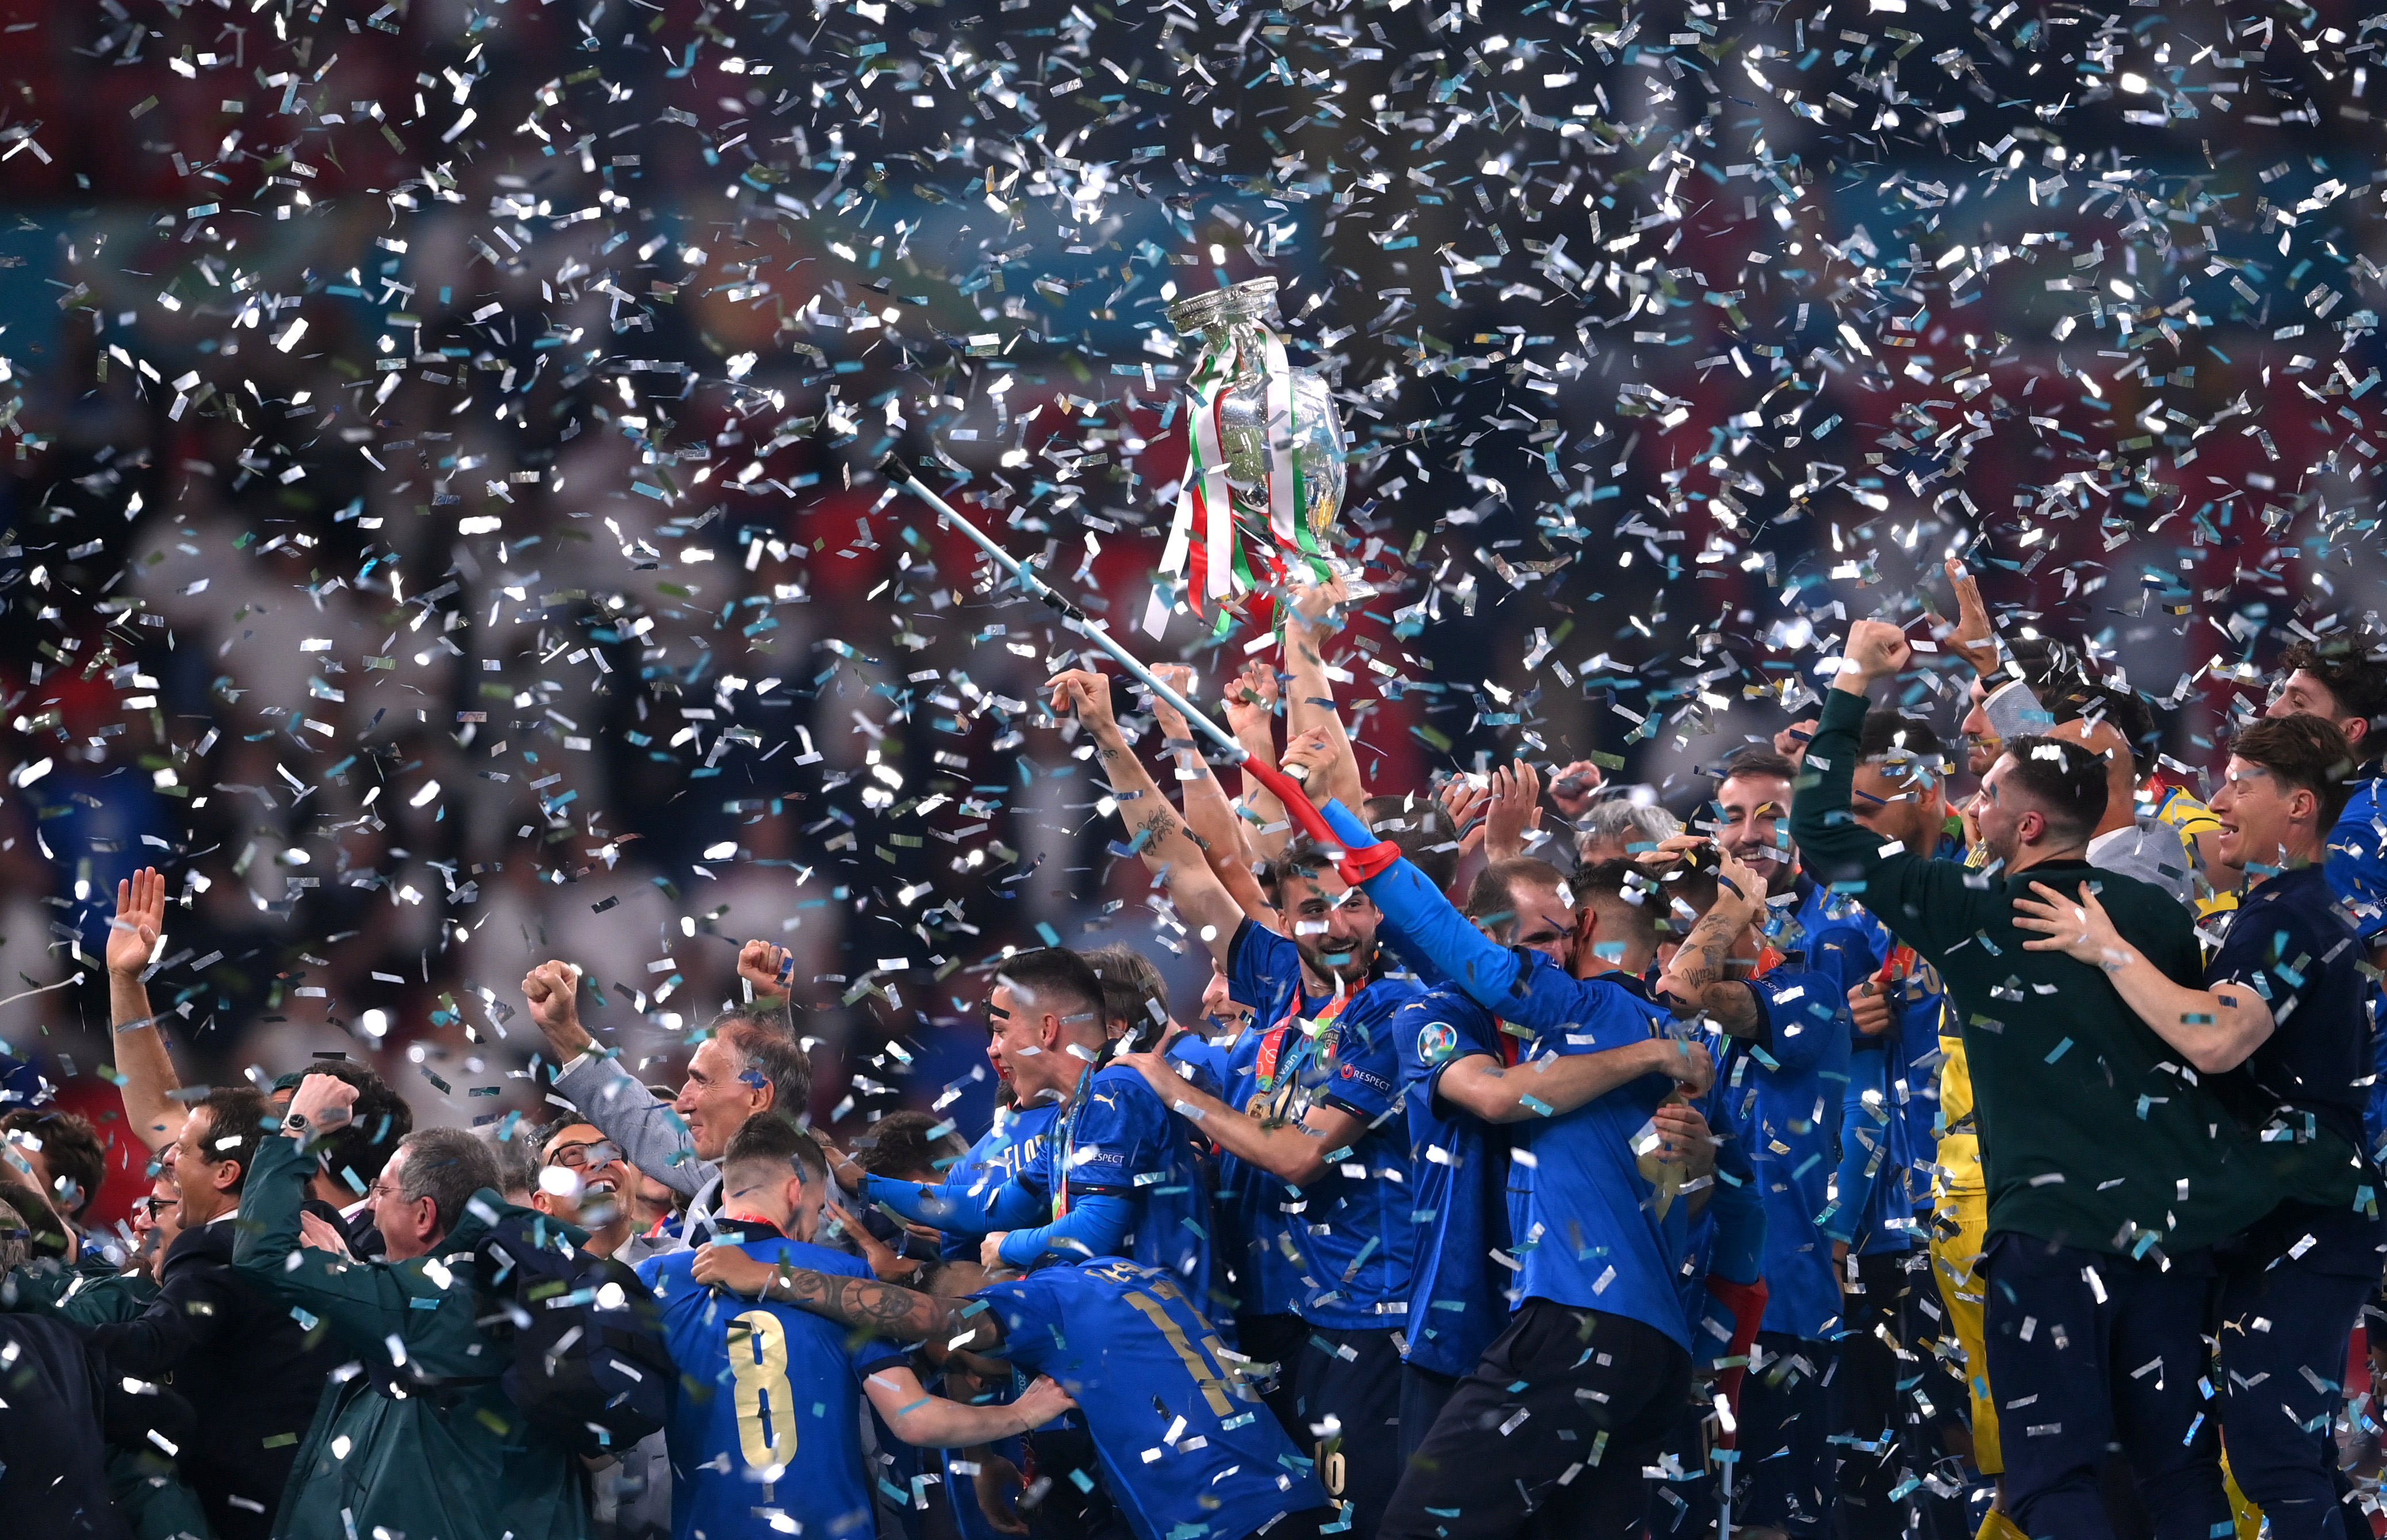 Soccer Football - Euro 2020 - Final - Italy v England - Wembley Stadium, London, Britain - July 11, 2021 Italy players celebrate with the trophy after winning Euro 2020 Pool via REUTERS/Laurence Griffiths